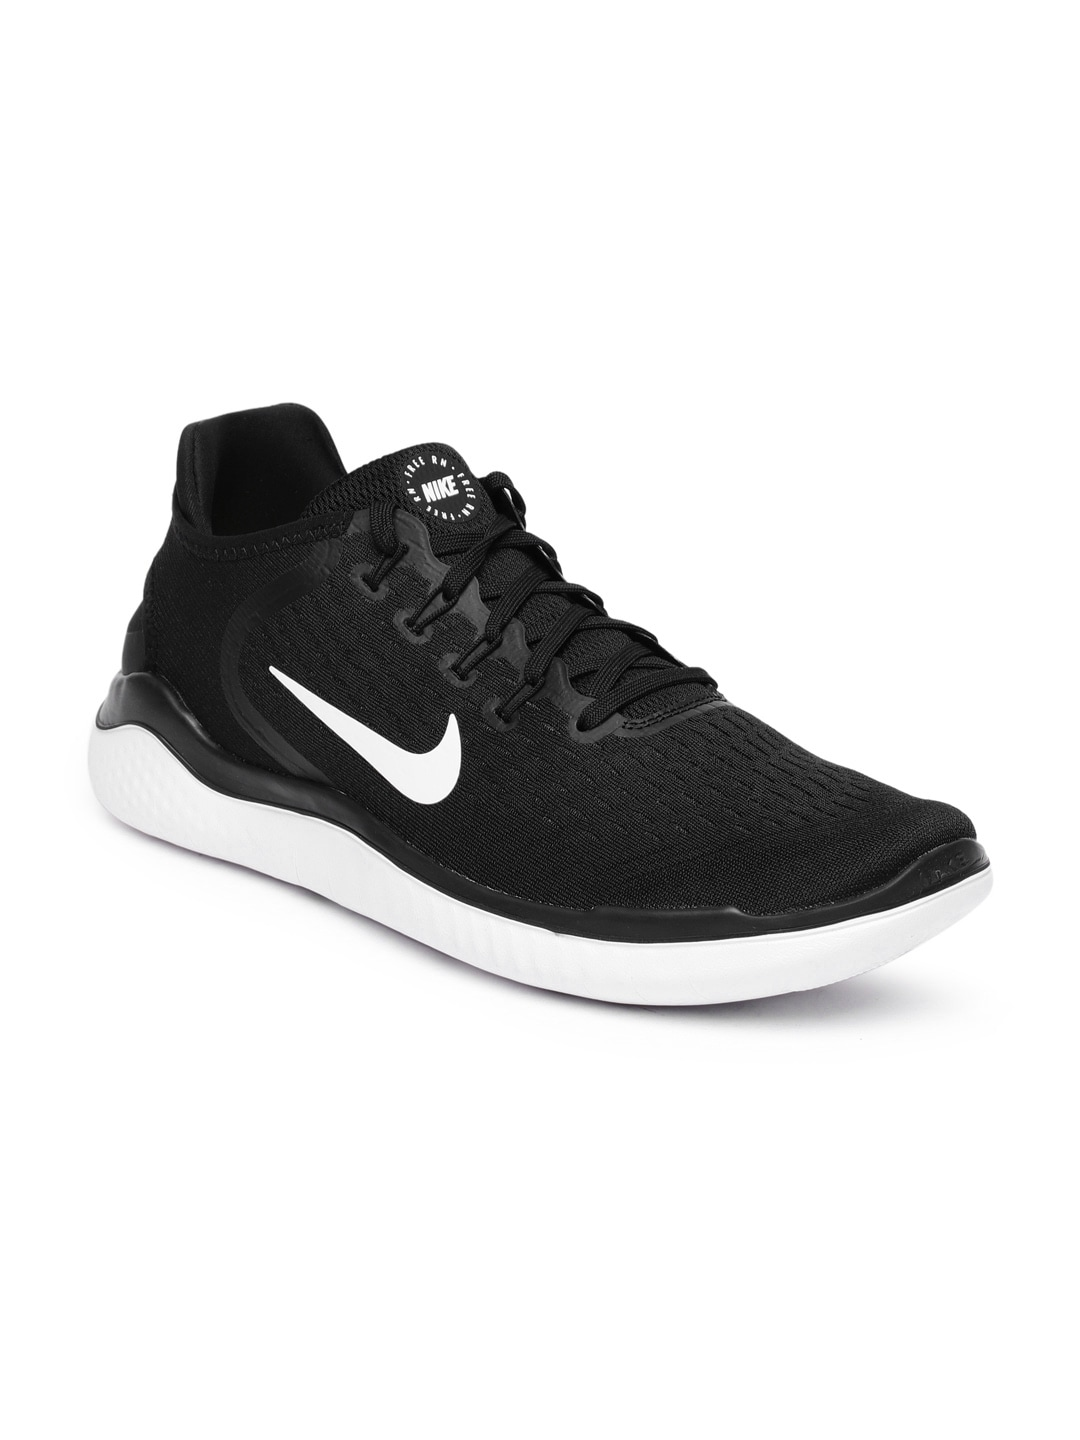 timeless design 0b8ed 47c5c Nike Shoes - Buy Nike Shoes for Men, Women   Kids Online   Myntra